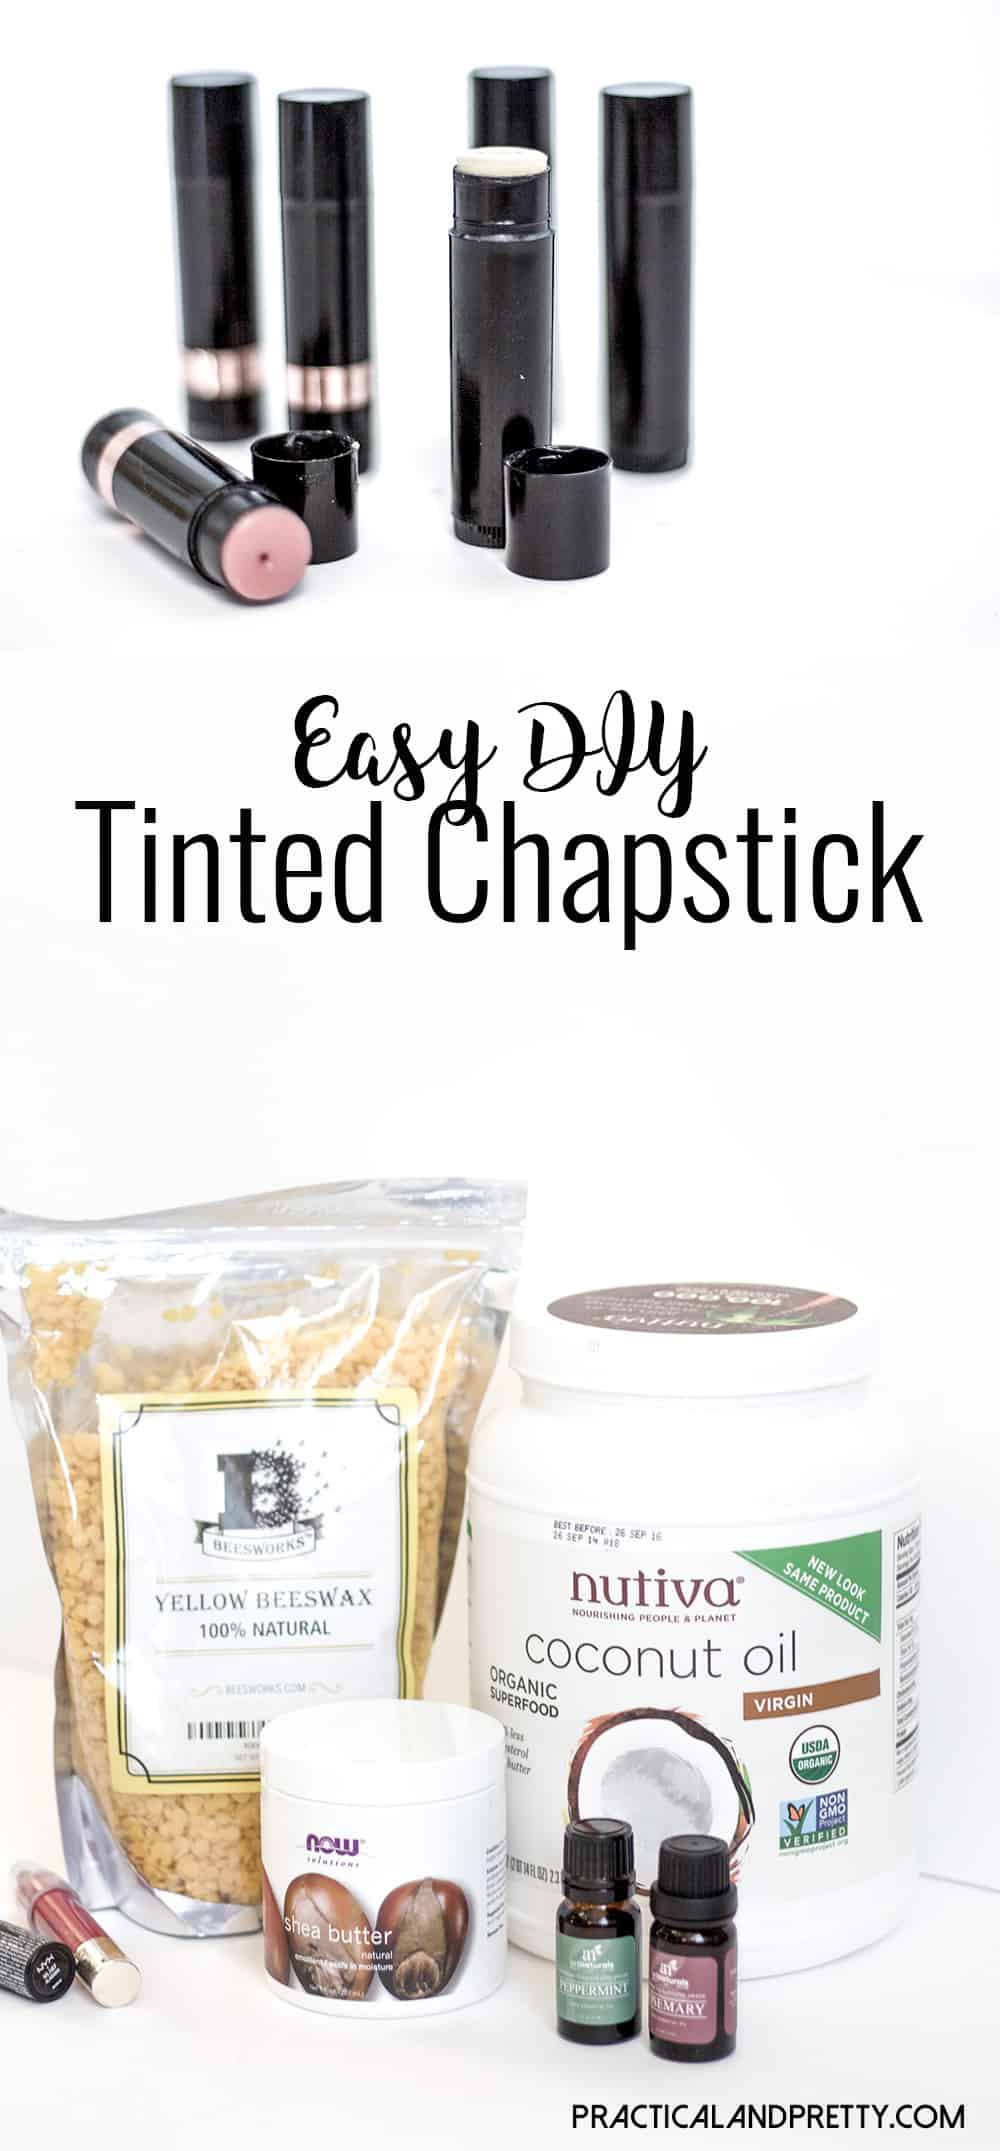 Making your own tinted chapstick is so simple. You'll wonder why you hadn't done it sooner!